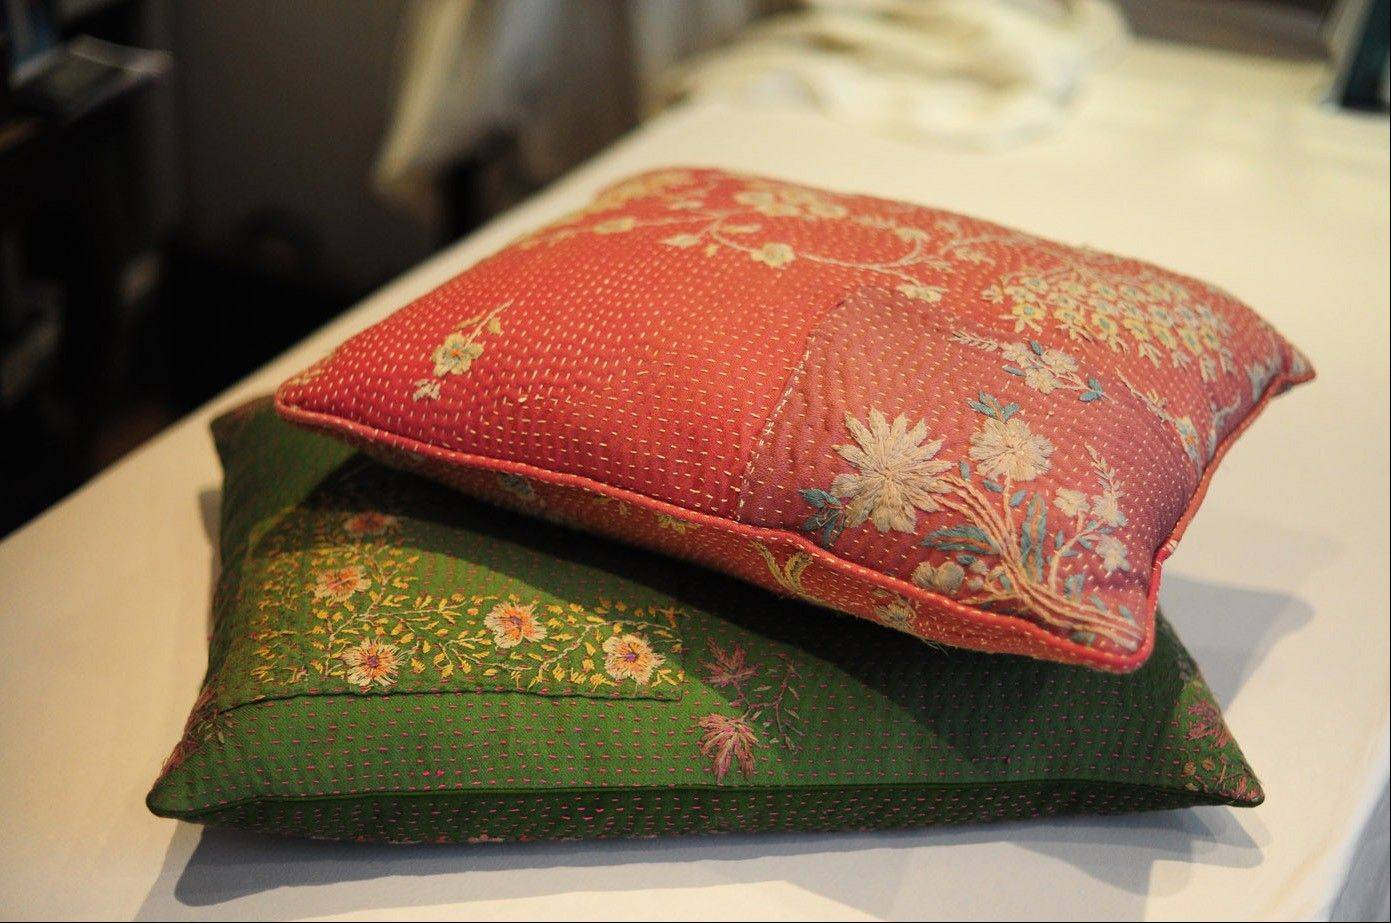 Cushions, made of fabric inspired by Carlisle's travel to India, are sold at Bergdorf Goodman.